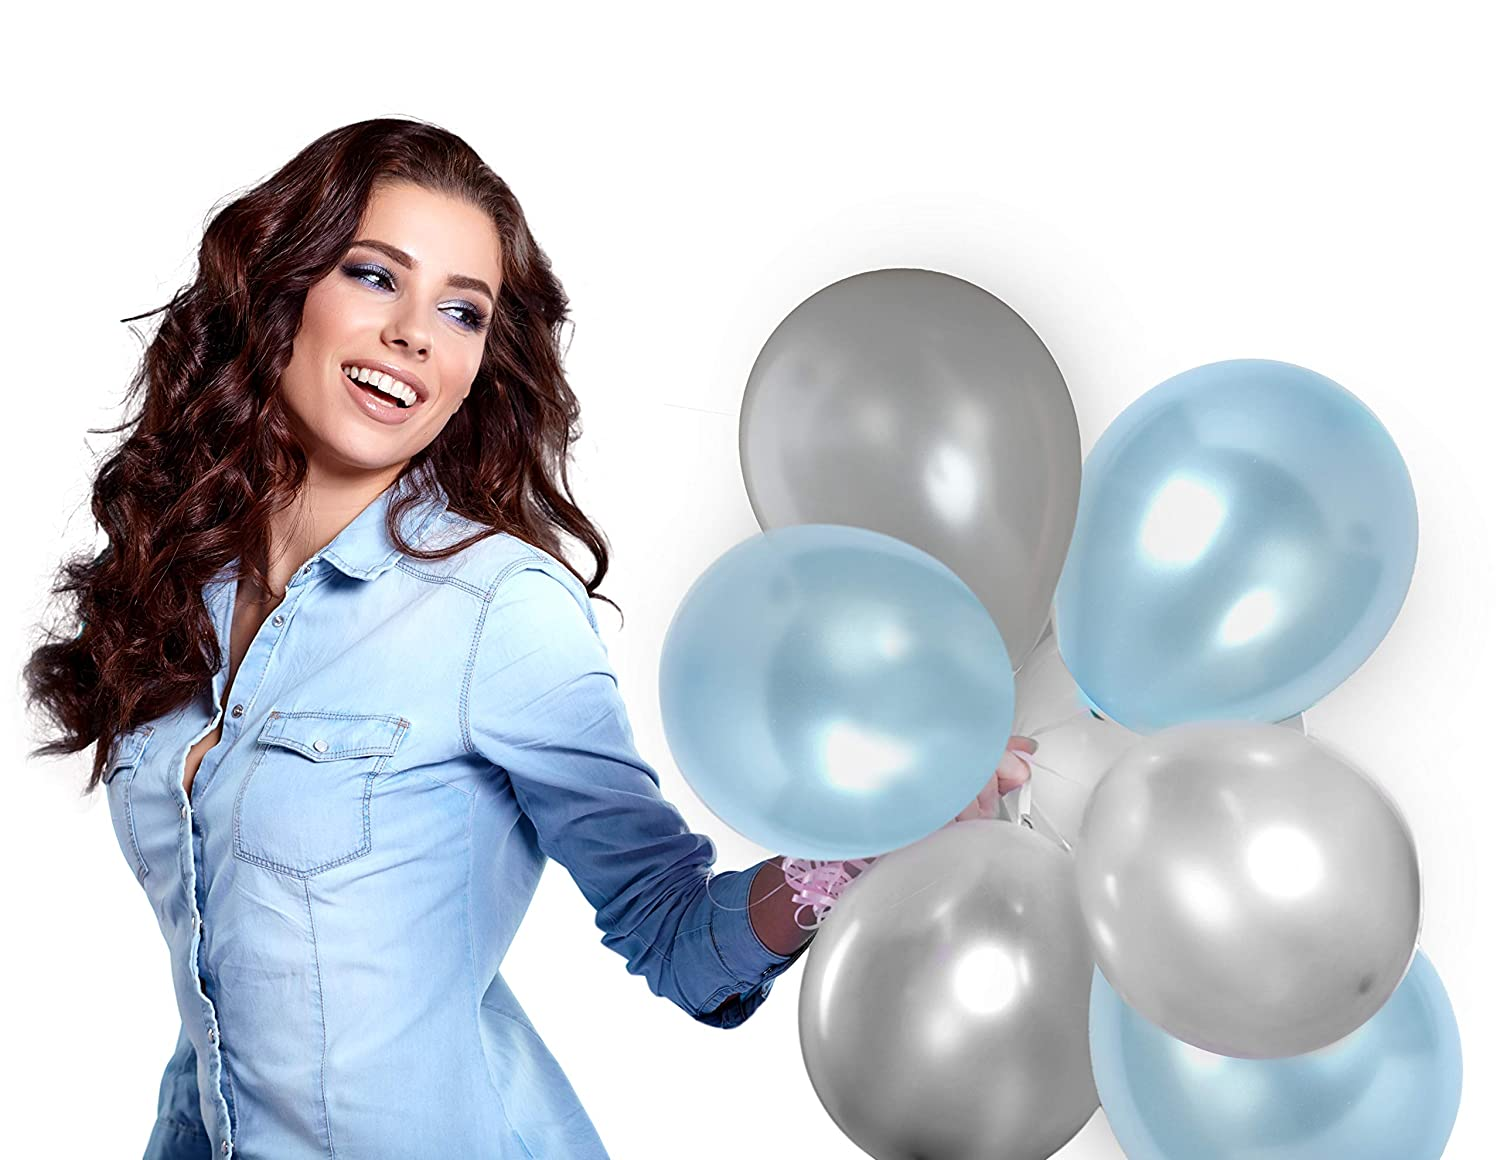 Treasures Gifted Silver and Light Blue Balloons Set in Metallic Latex for Baby Shower Birthday Wedding Decorations